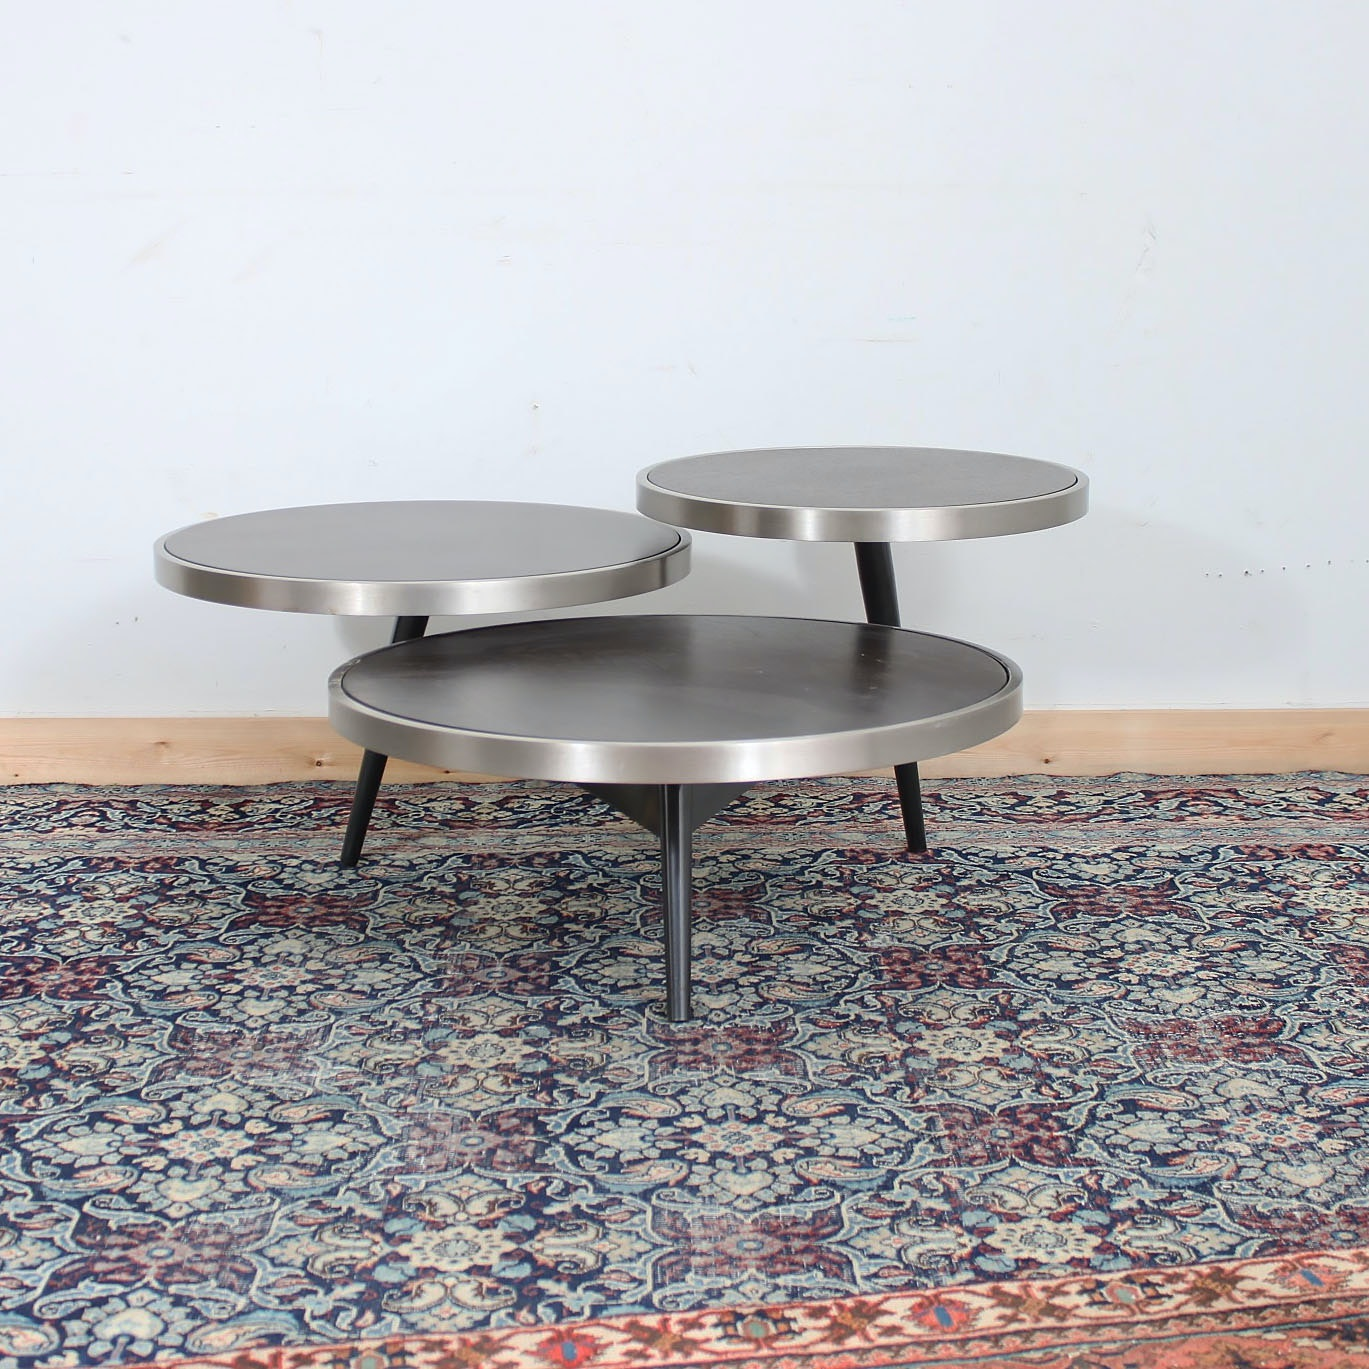 Modernist Tom Dixon Style Tiered Coffee Table